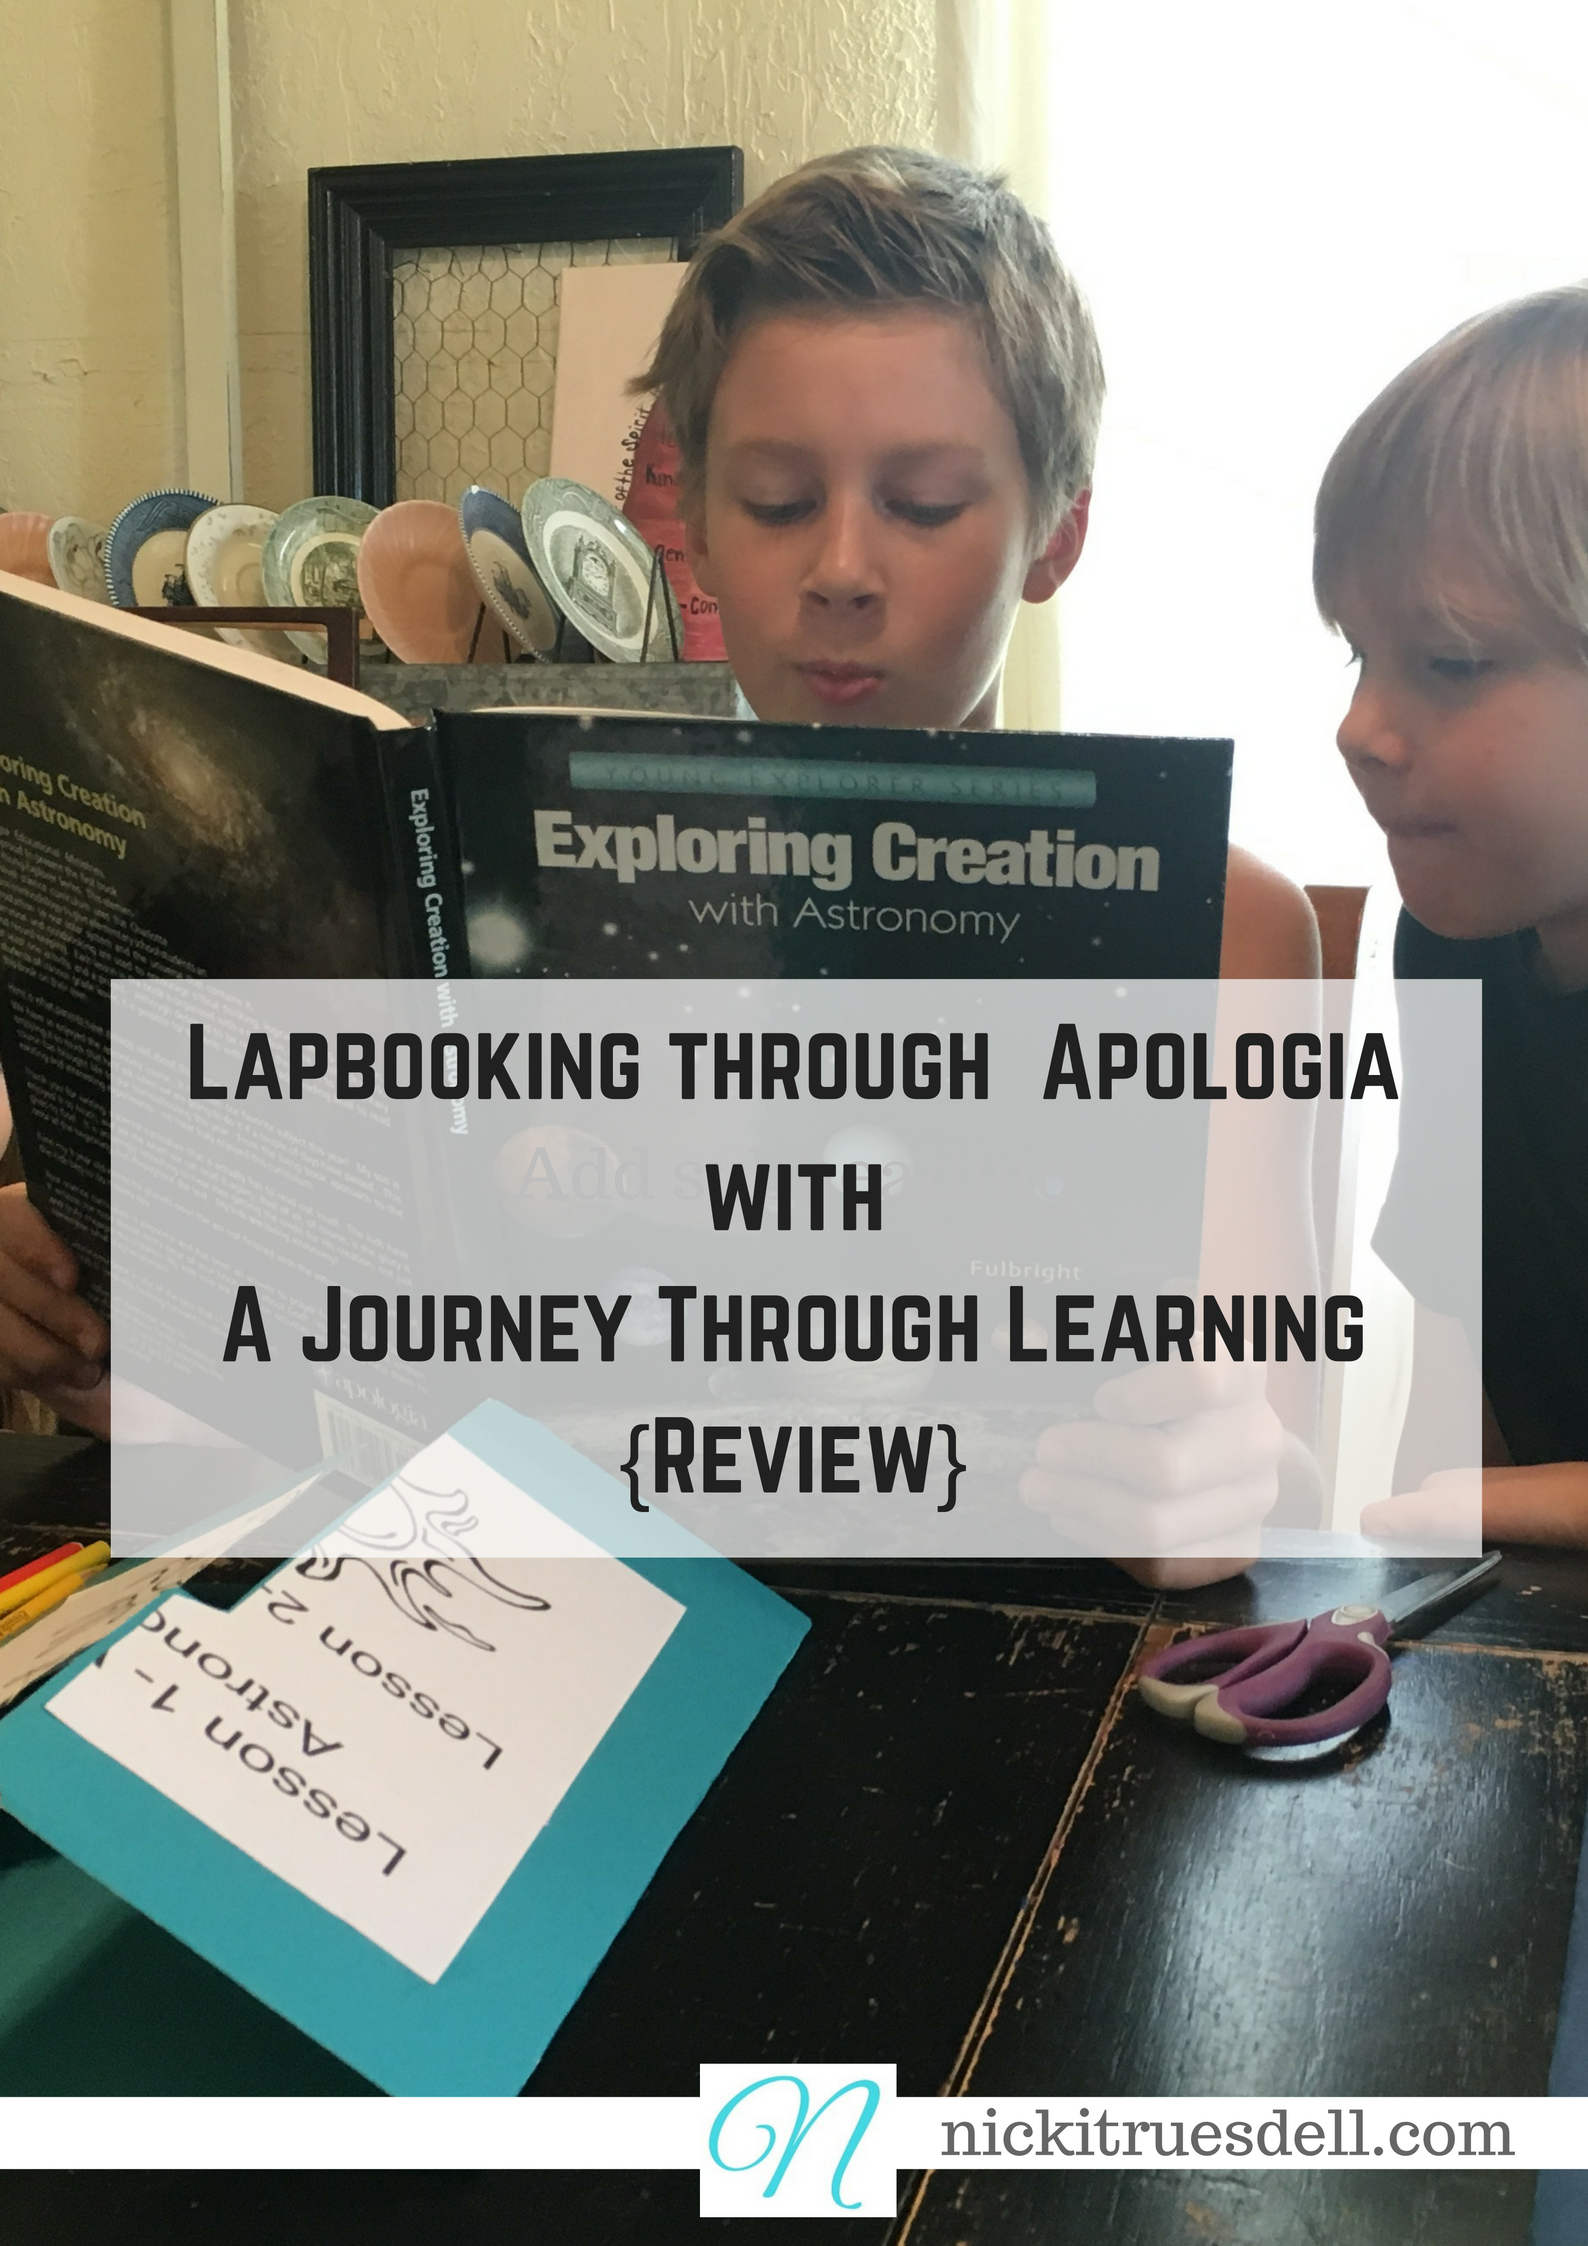 Journey through learning pin